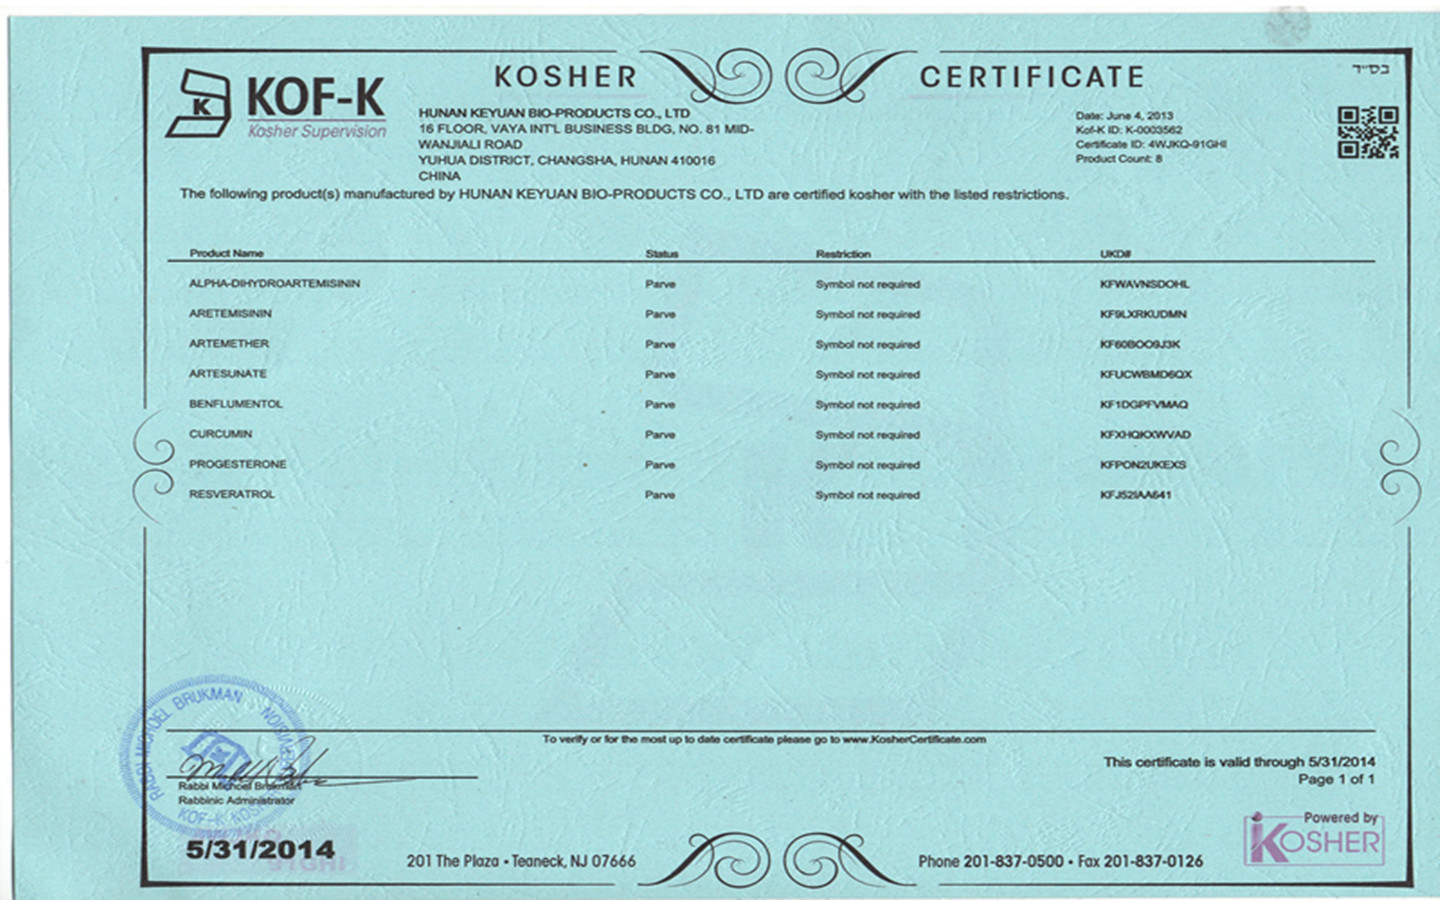 kosher-certification.jpg